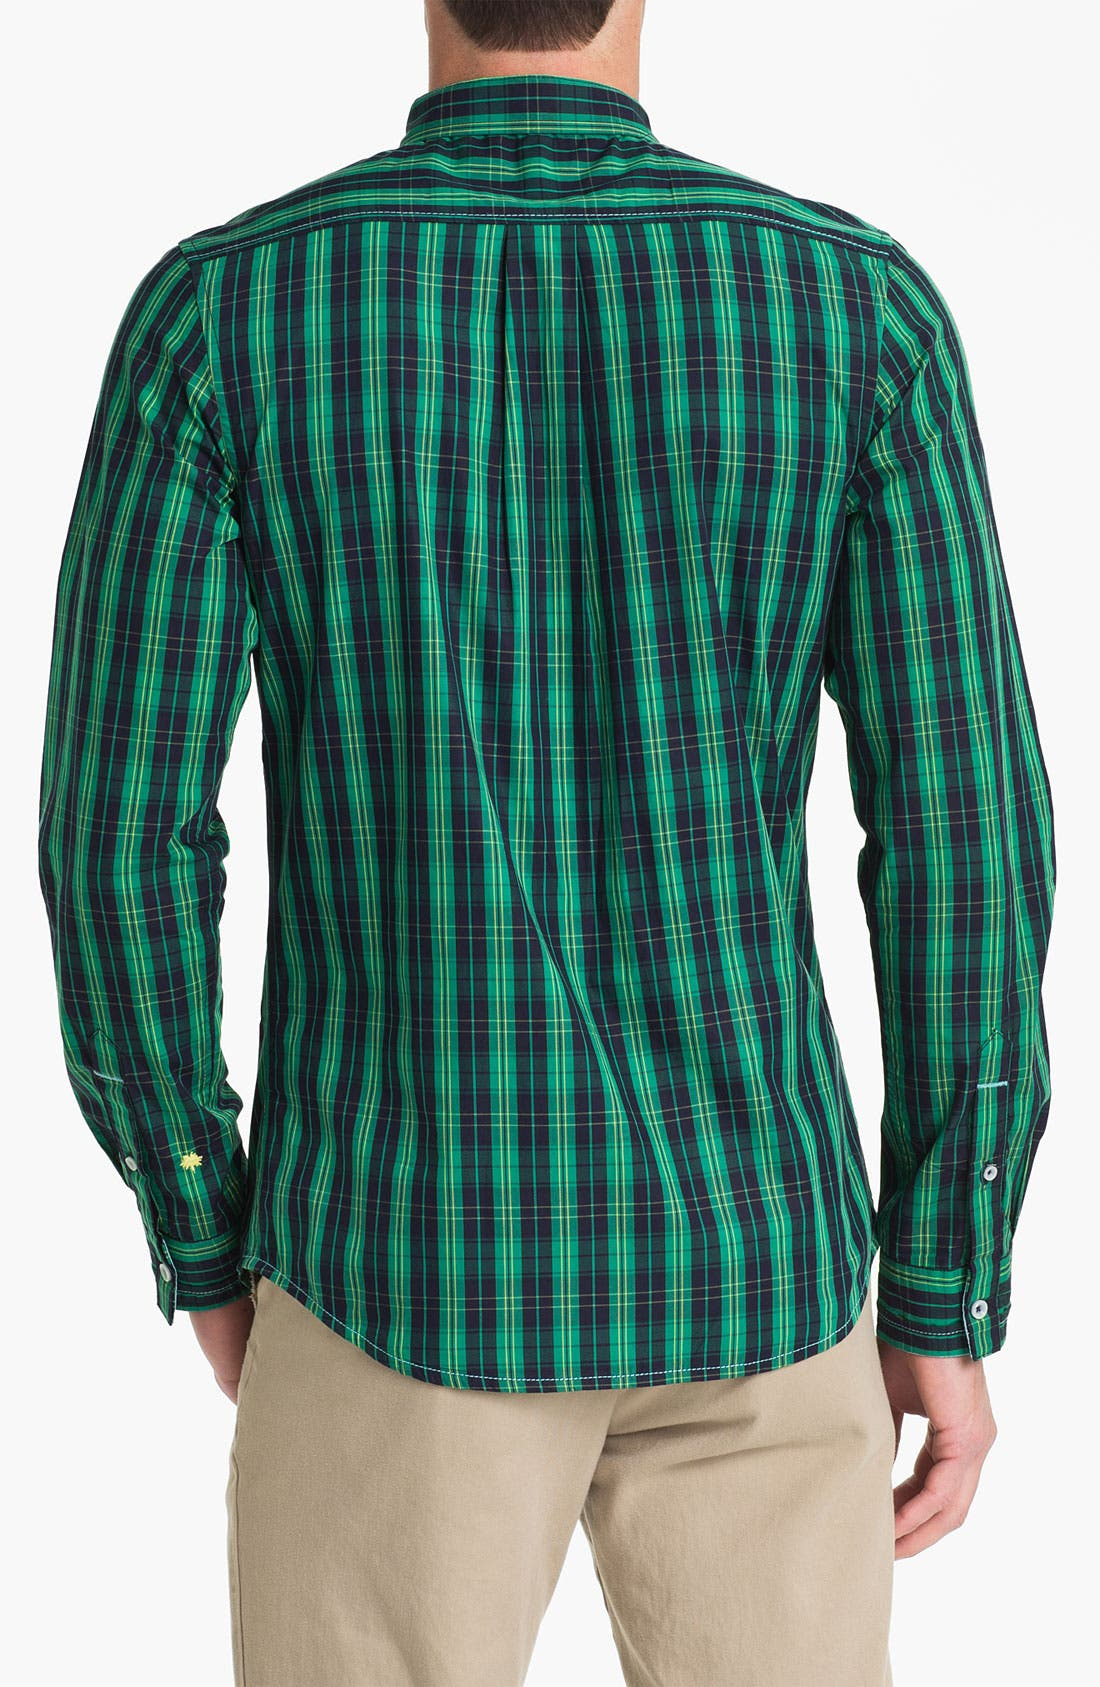 Alternate Image 2  - Descendant of Thieves Tartan Plaid Woven Shirt